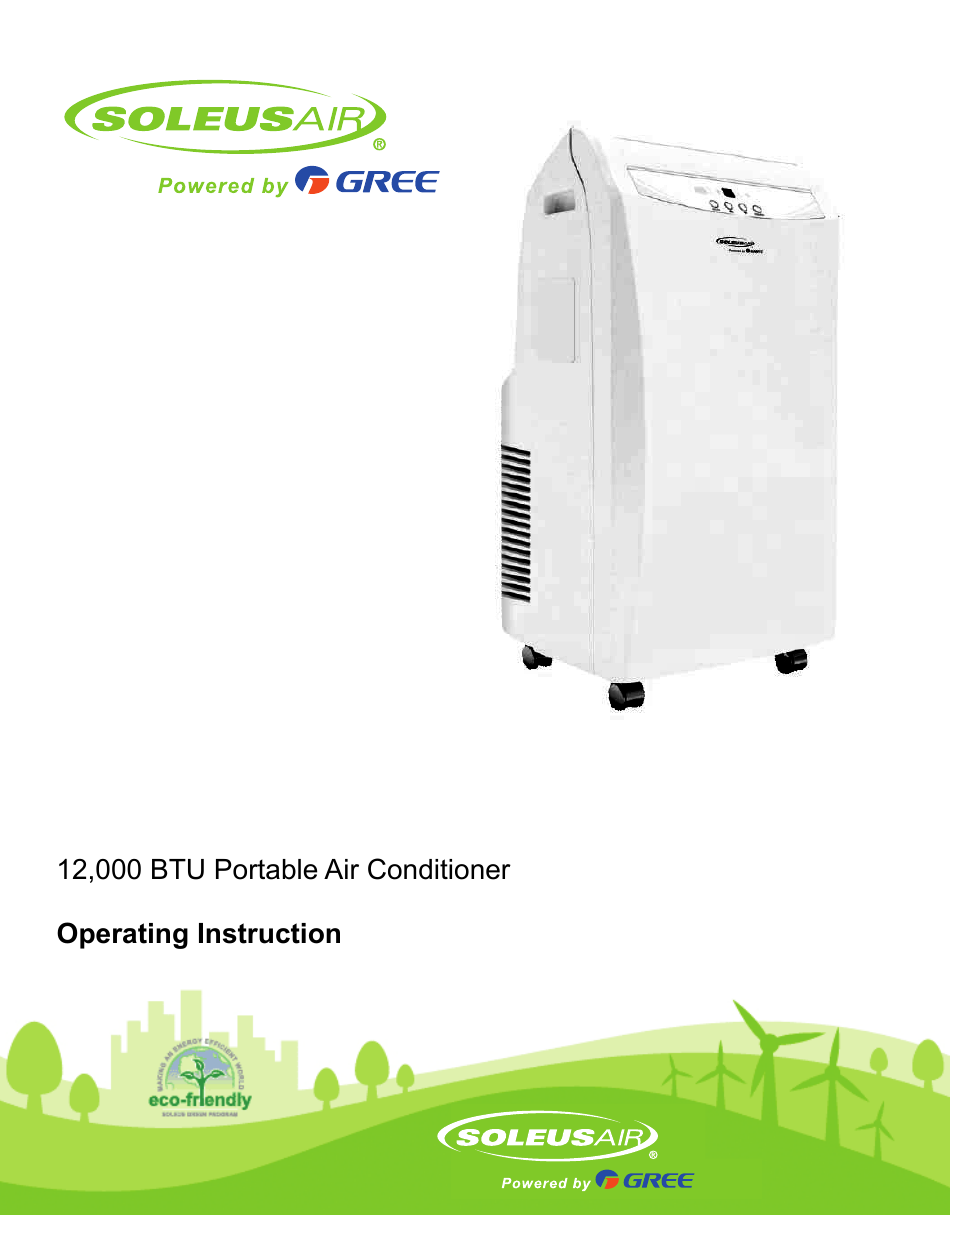 Soleus Air Portable Air Conditioner GH PAC 12E1 User Manual | 16 Pages |  Also For: Portable Air Conditioner GH PAC 12E1HP WITH HEAT